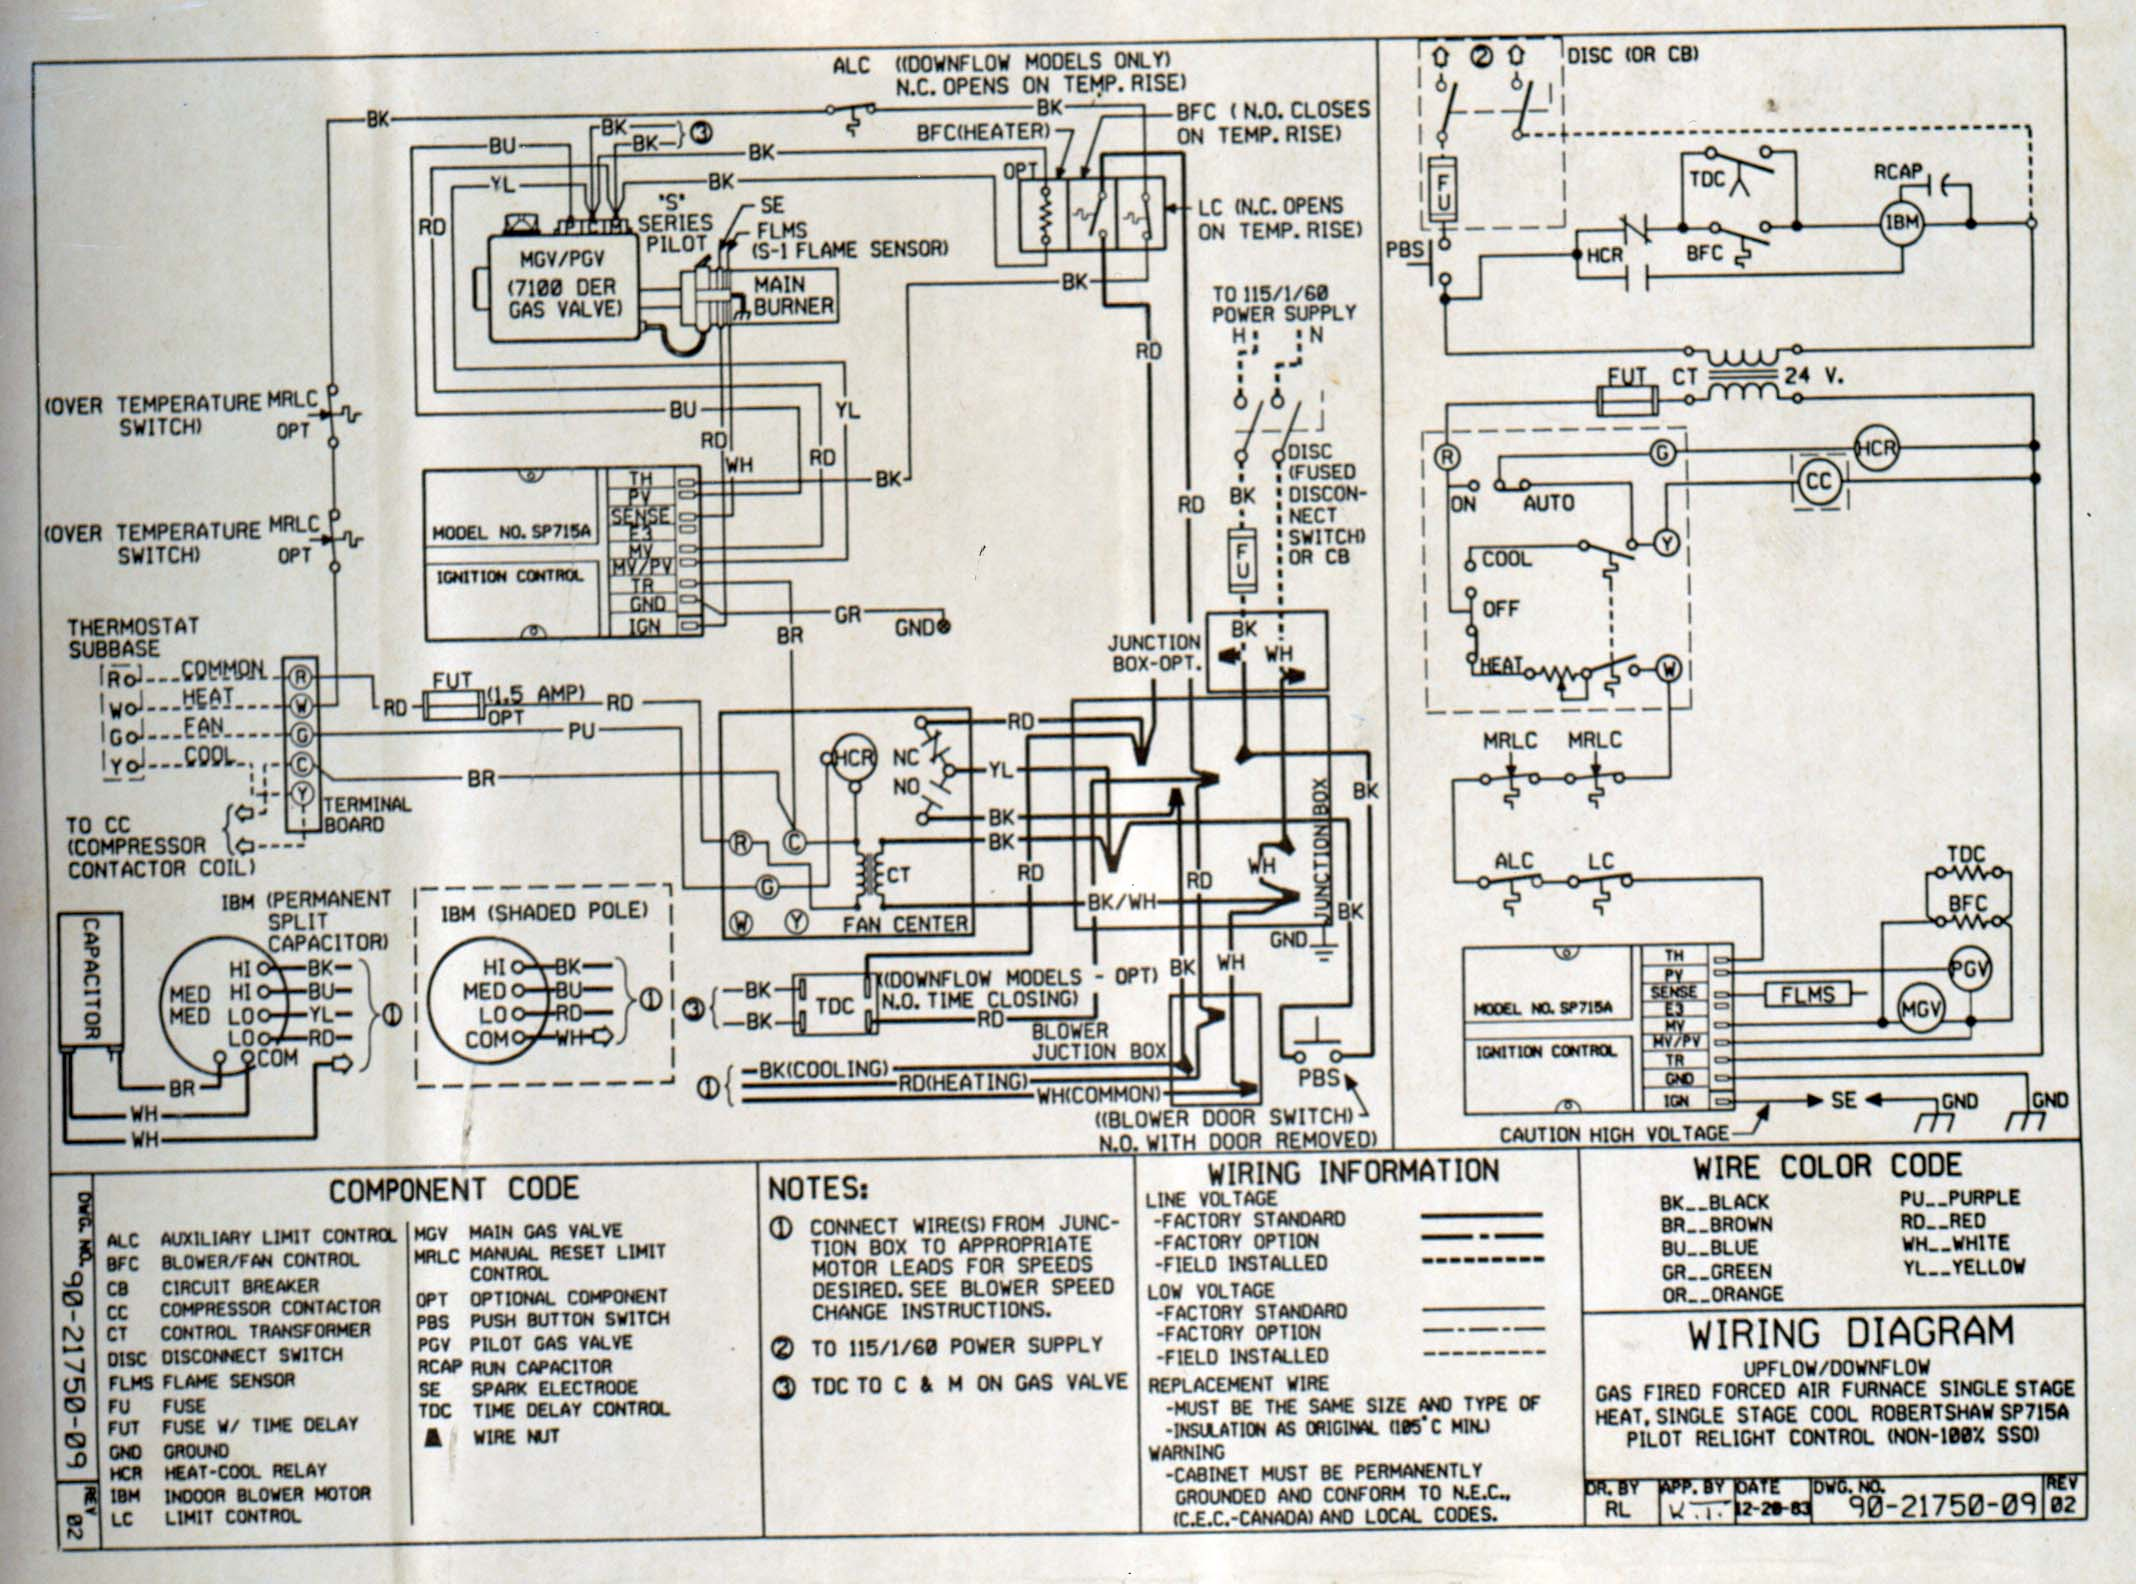 ac fan wiring diagram hvac furnace fan won't stop running after the heating cycle is done #14